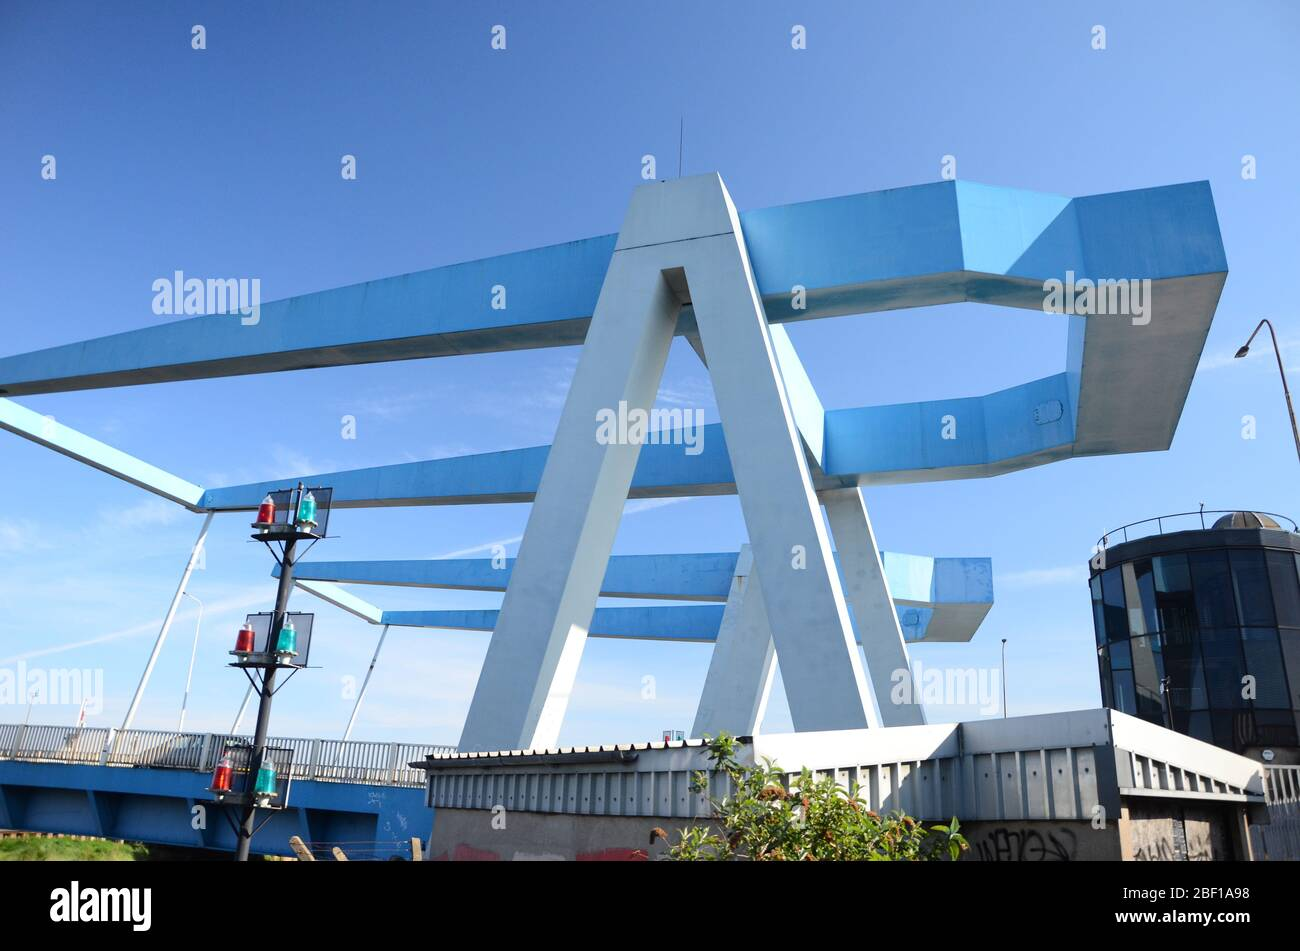 Clough road, Ferry Lane bridges over the river Hull, kingston upon Hull Stock Photo